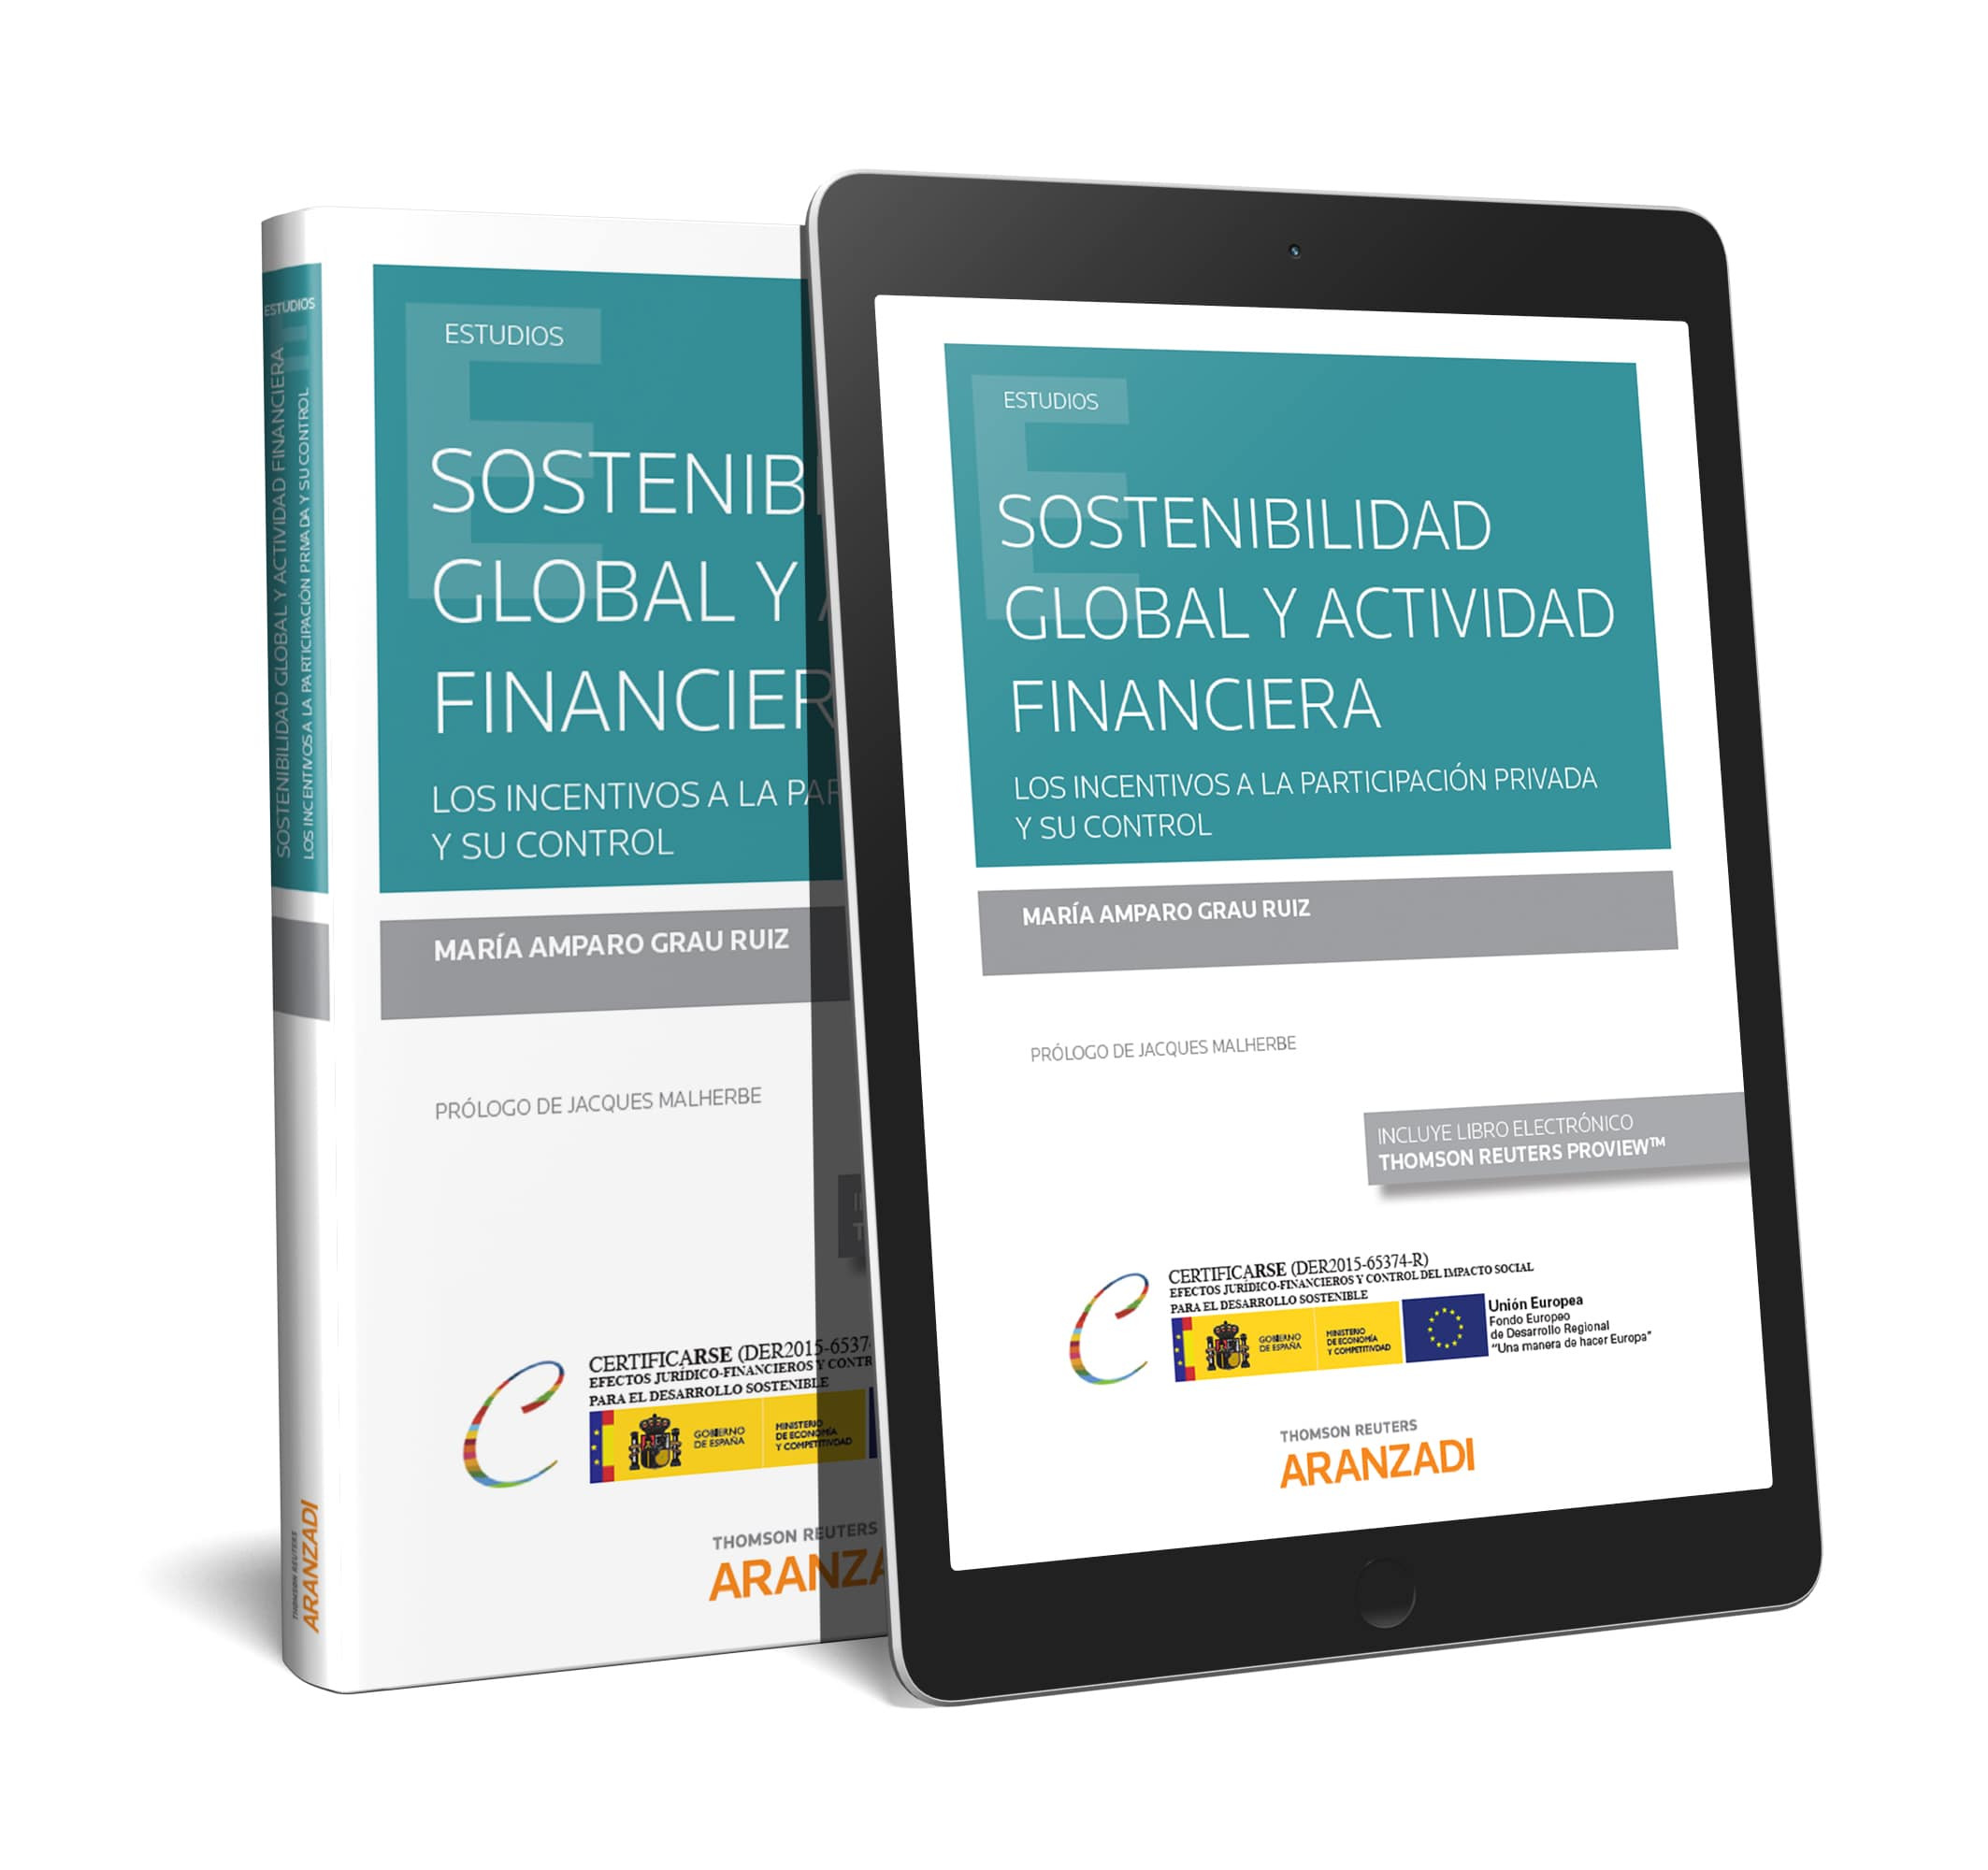 Sostenibilidad Global y Actividad Financiera (Papel + e-book)